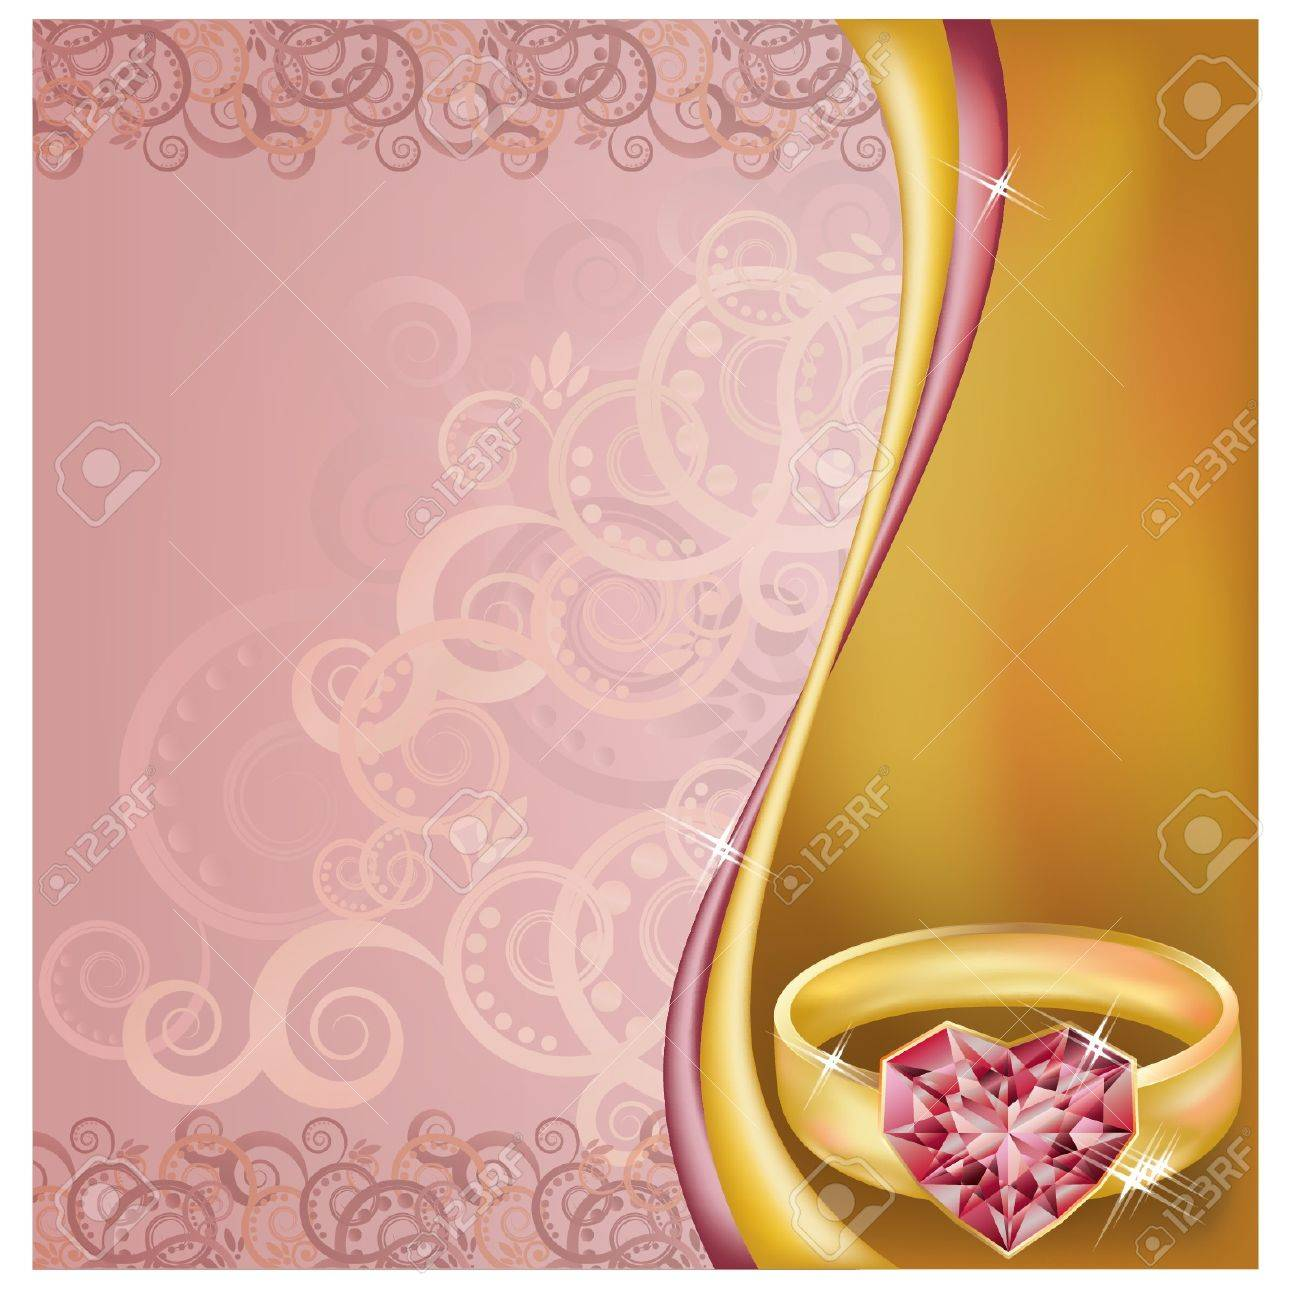 Wedding Invitation Card With Ruby Heart Ring Royalty Free Cliparts ...